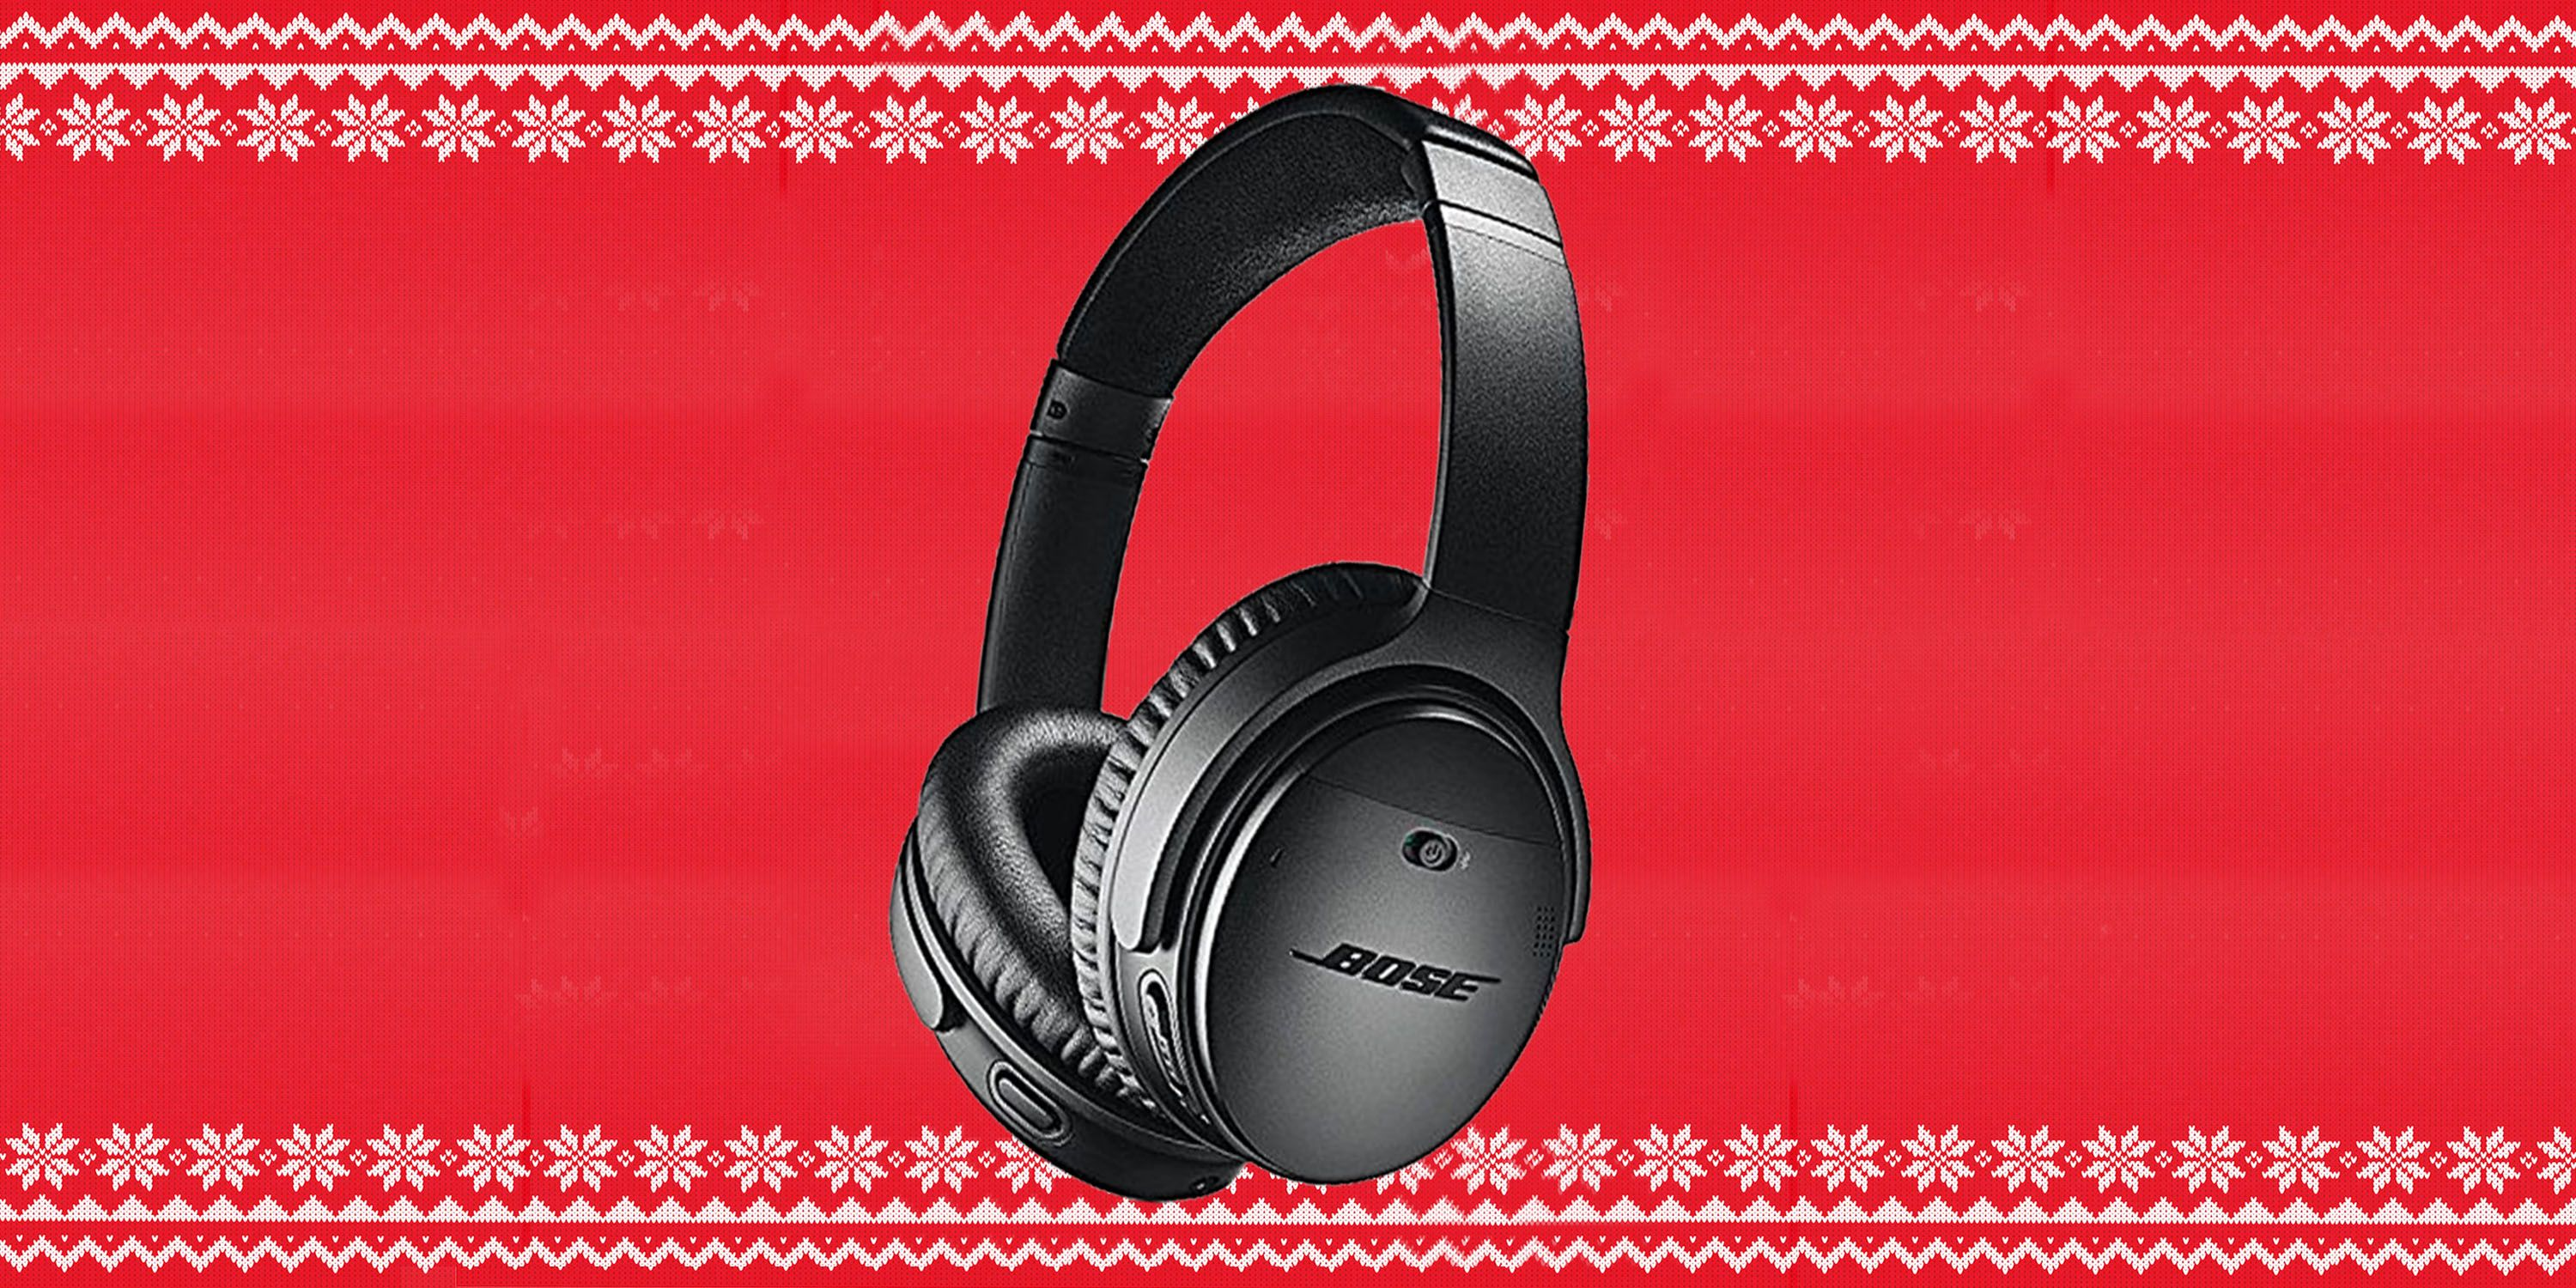 Best christmas gifts for employees under $20.00